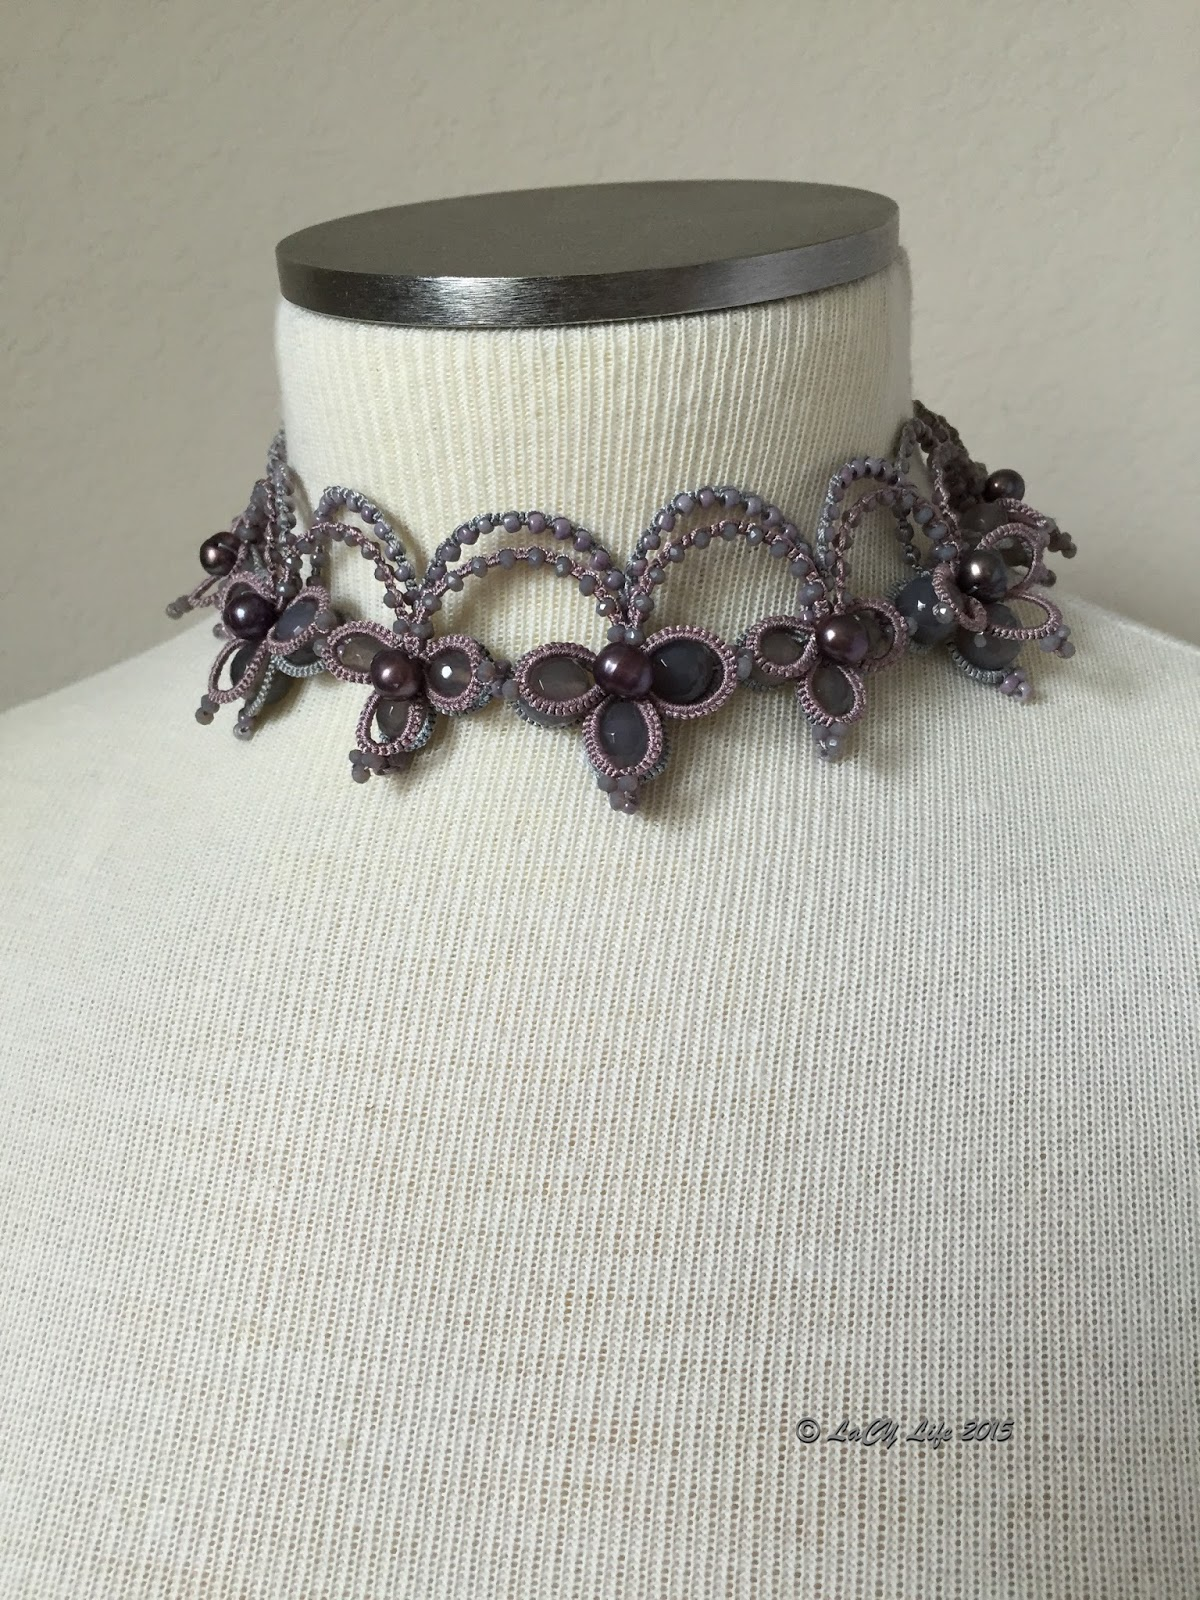 Lacy Life 2015 Shuttle Agate Black I Tatted From Grey And Dusty Plum Purple Polyester Thread Pink Seed Beads Faceted Crystals Natural Round